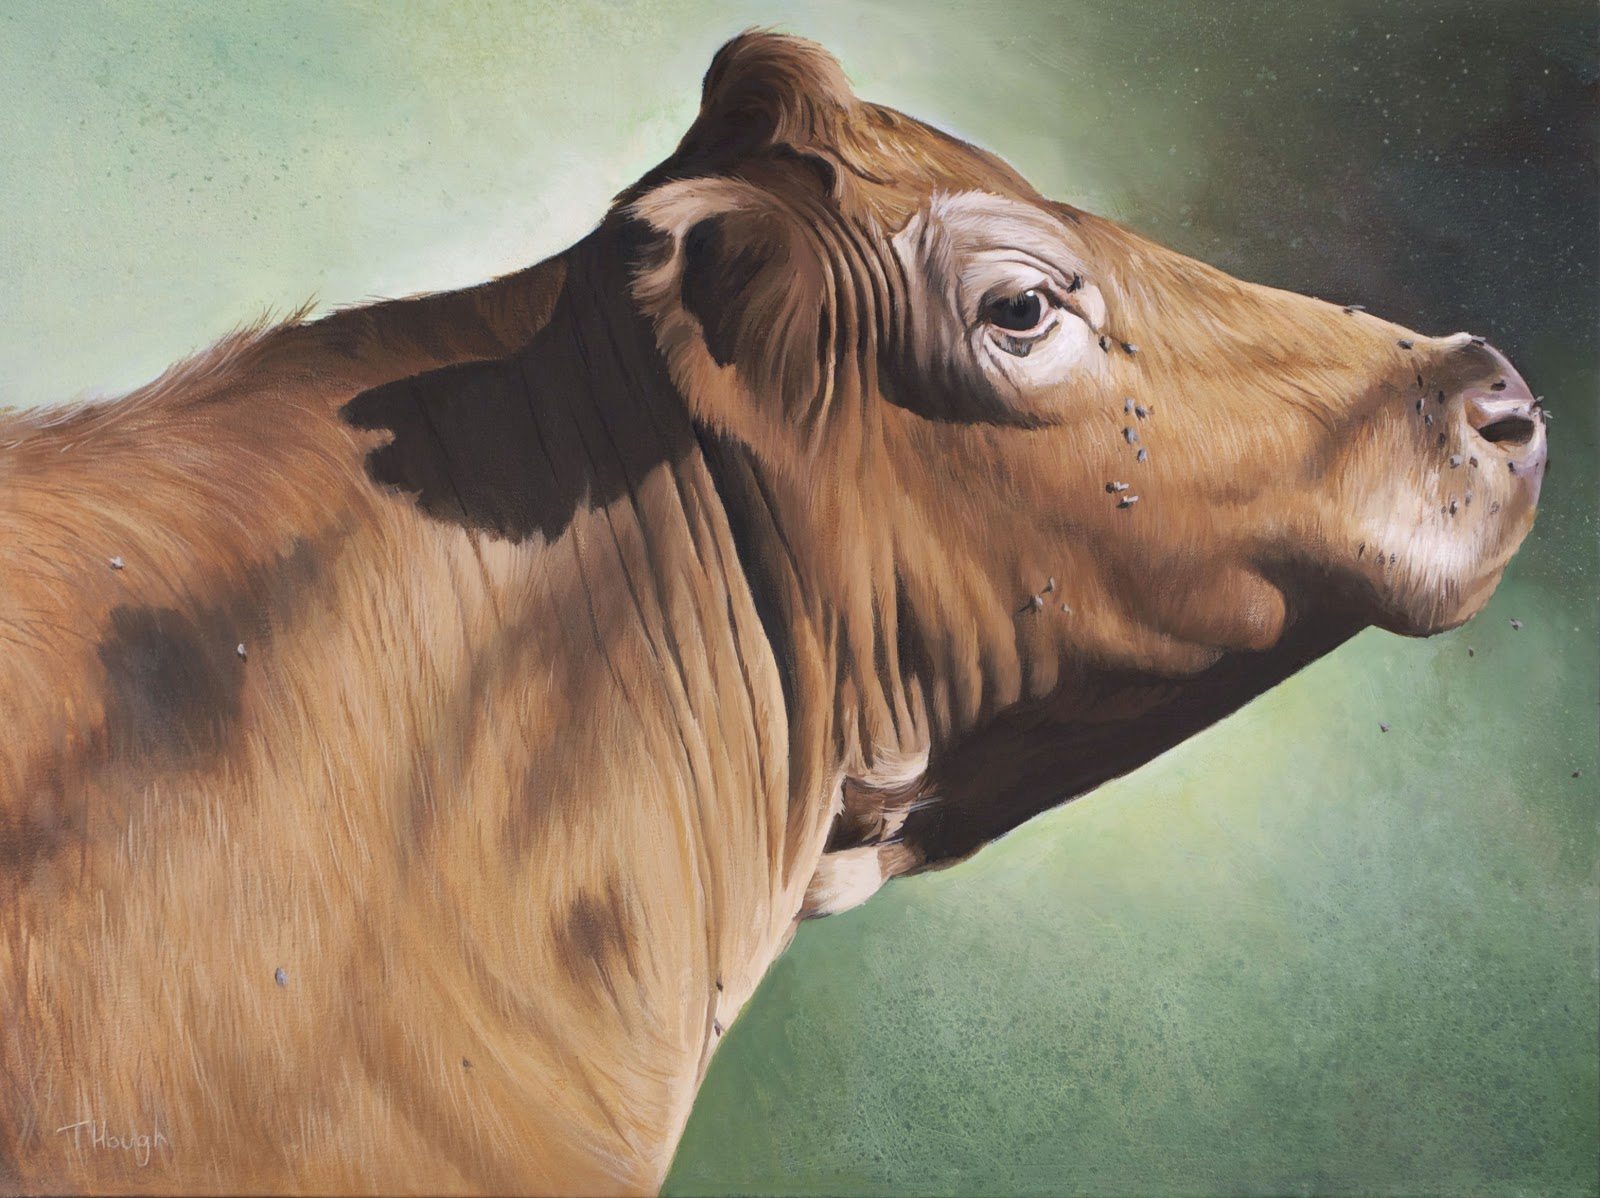 essay on cows The cow is a domestic animal which is found all over the world it has four legs, two horns on its head, and a long tail its body is covered with soft hairs its.